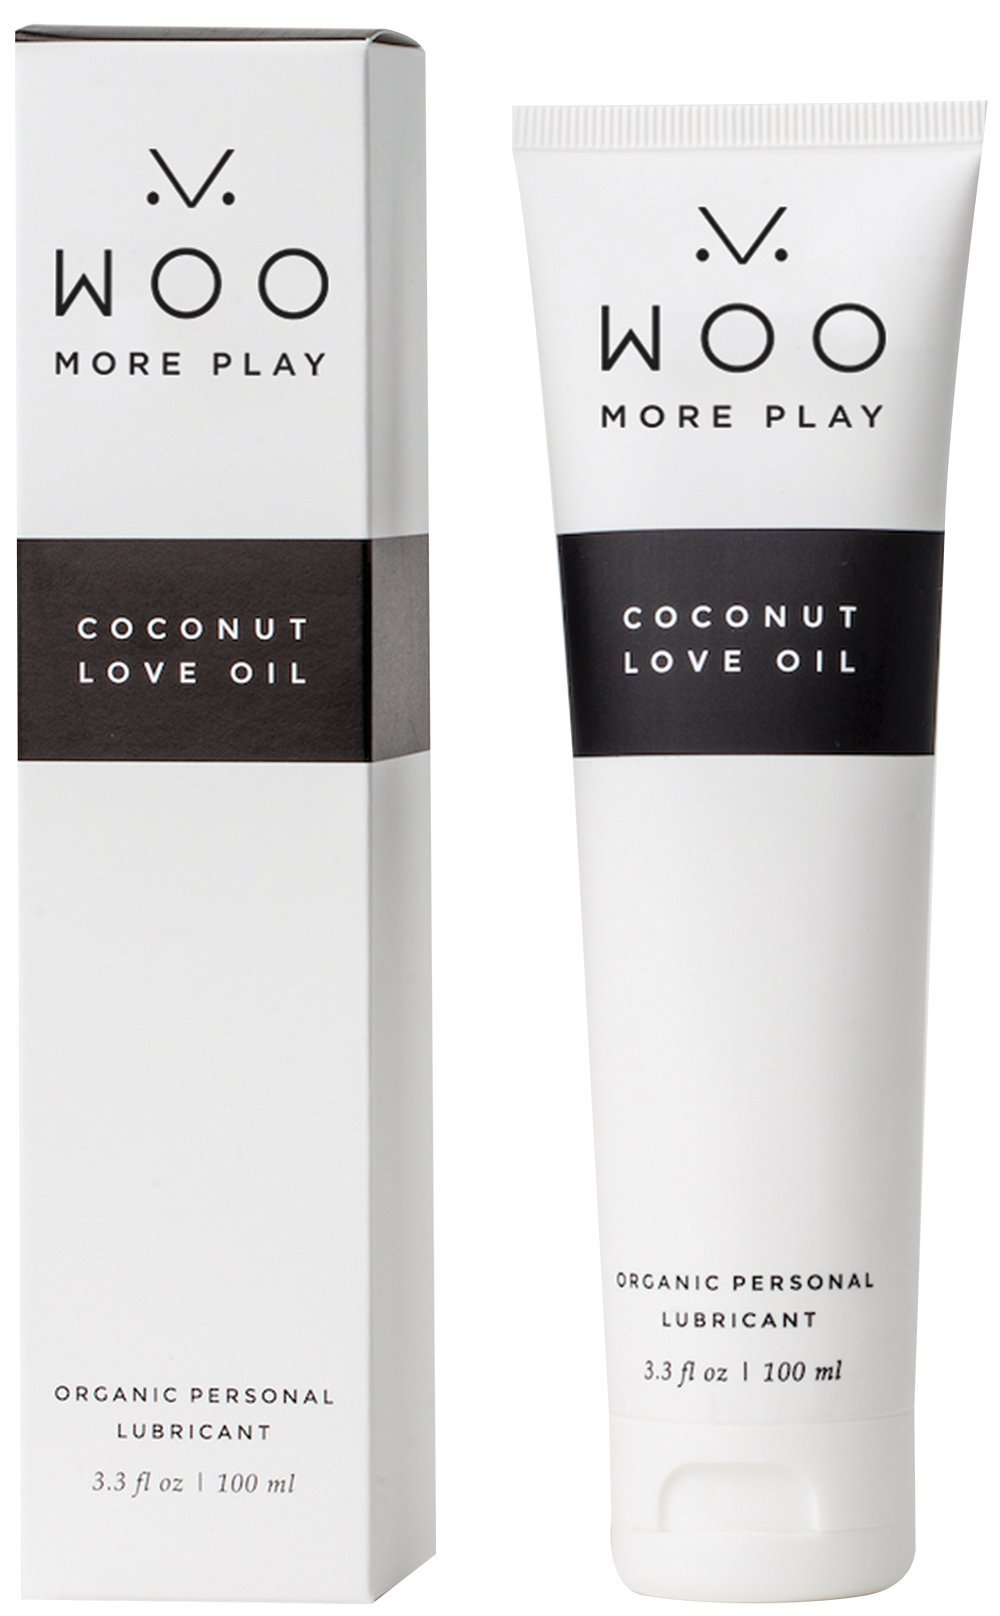 Lubricant - Woo More Play Coconut Love Oil (3.3 oz) - Designed With Feminine Sensuality in Mind - pH Balanced - All-Natural Ingredients - Made to Moisturize and Excite - Organic - Raw - Non-GMO